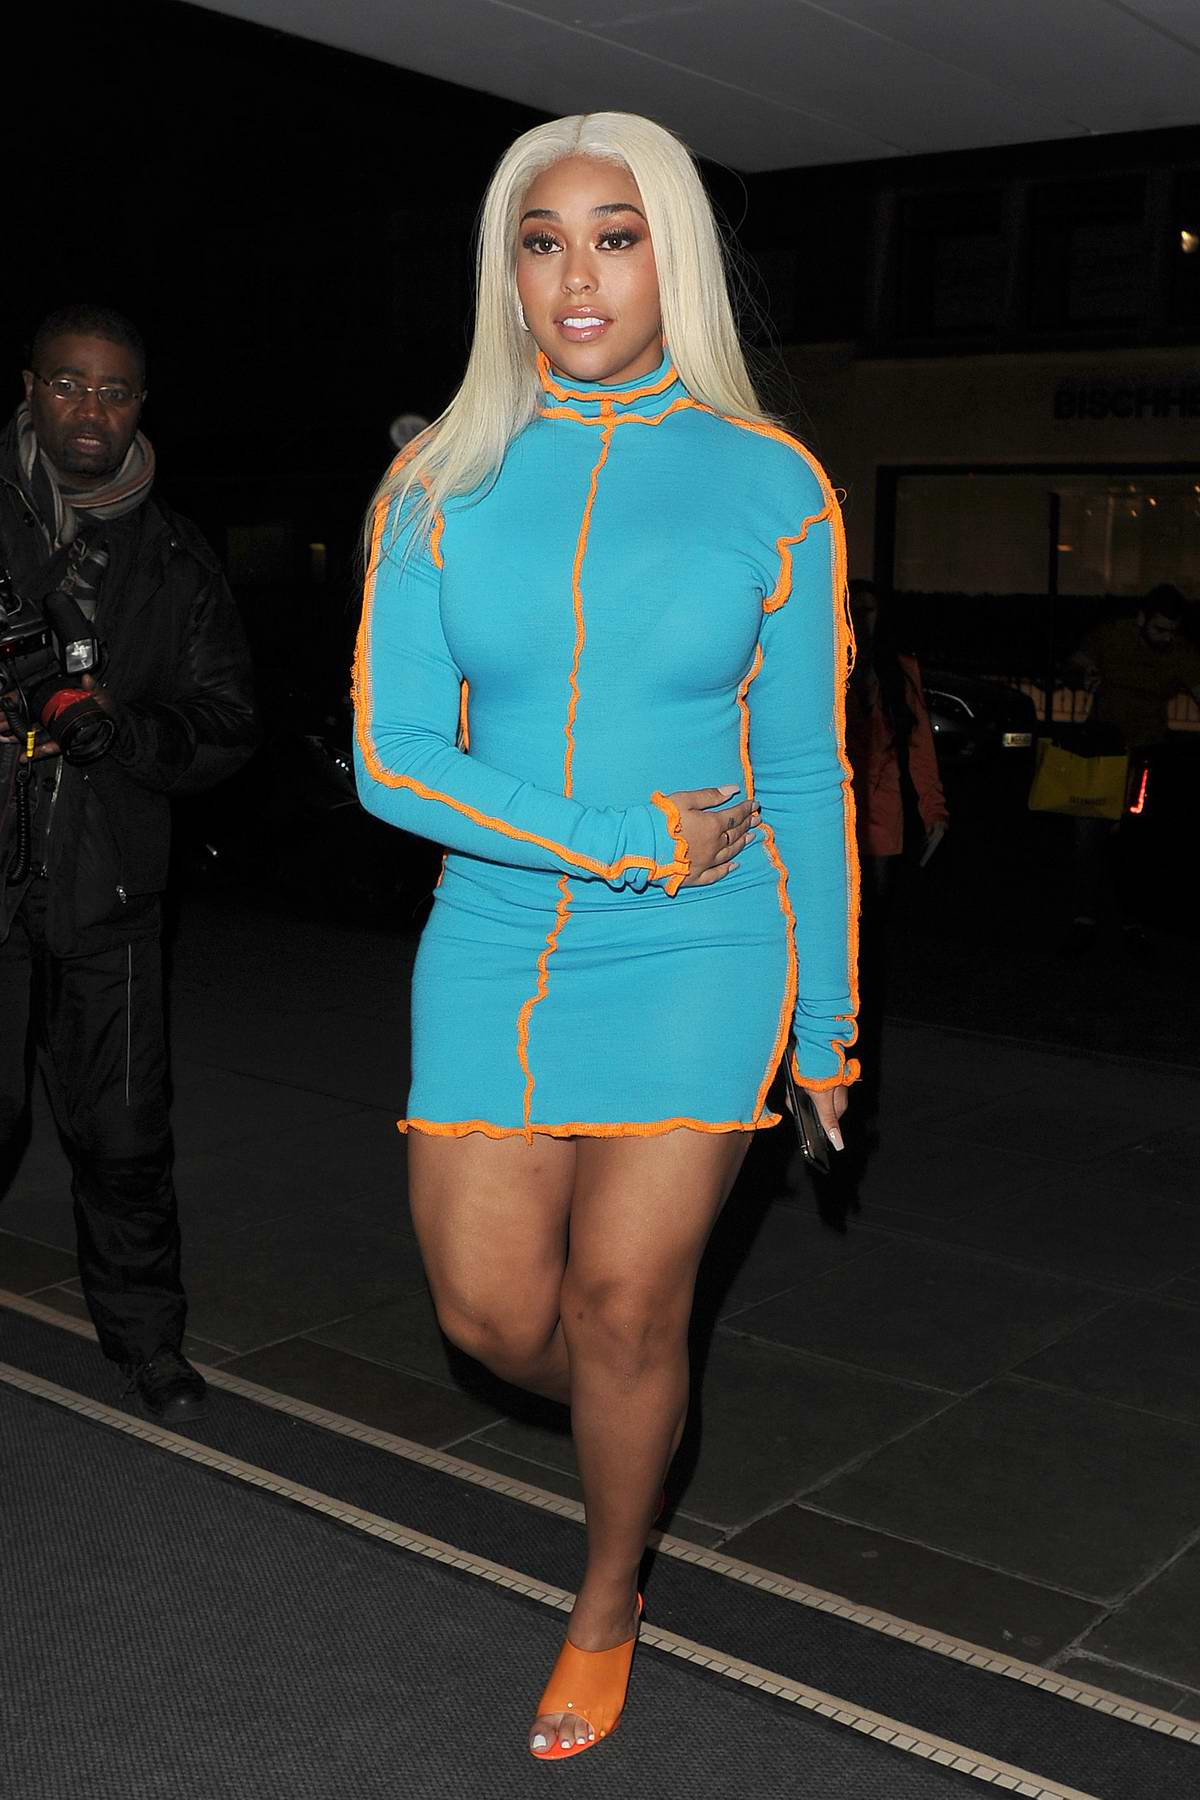 Jordyn Woods heads to the Eyelure X Jordyn Woods Launch Party in London, UK